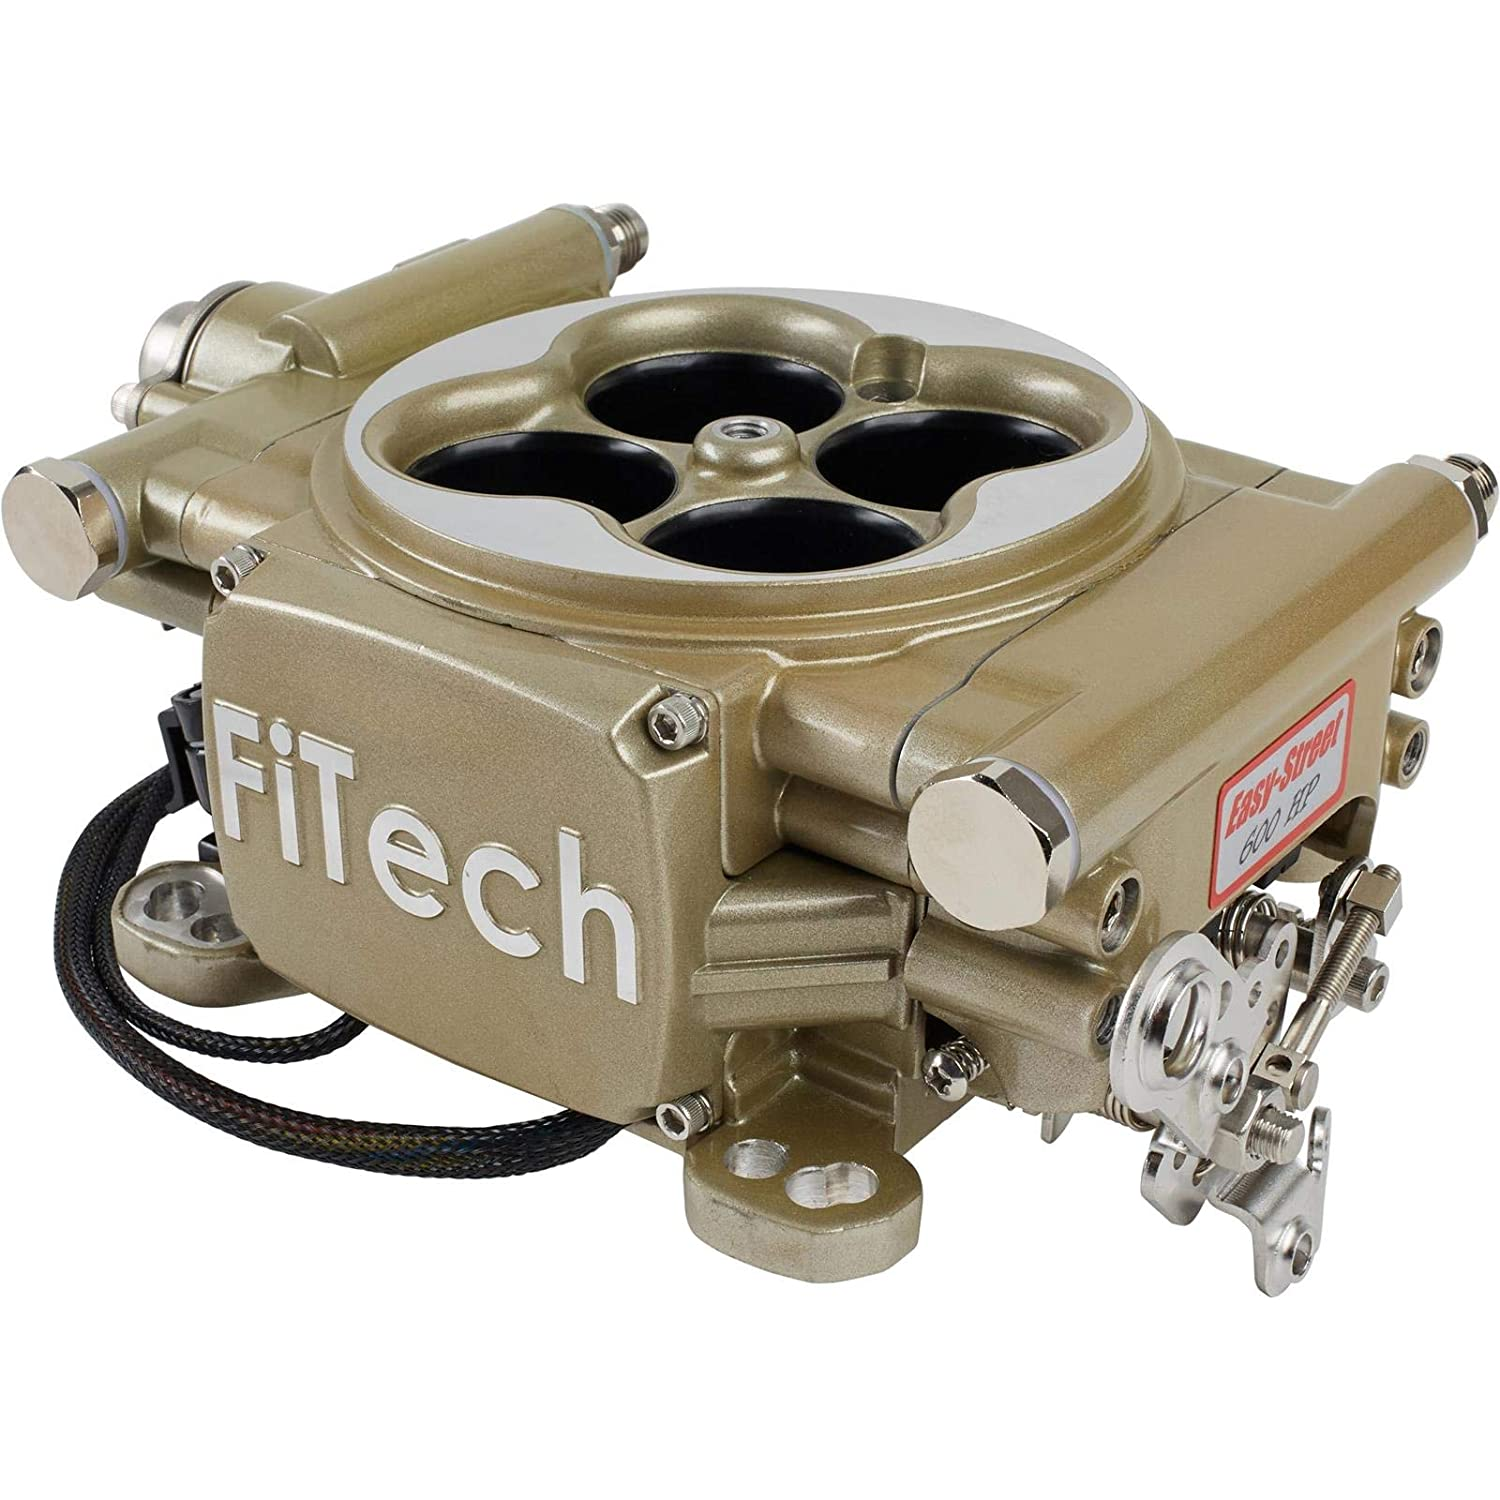 Fitech Easy Street Efi System Up To 600hp